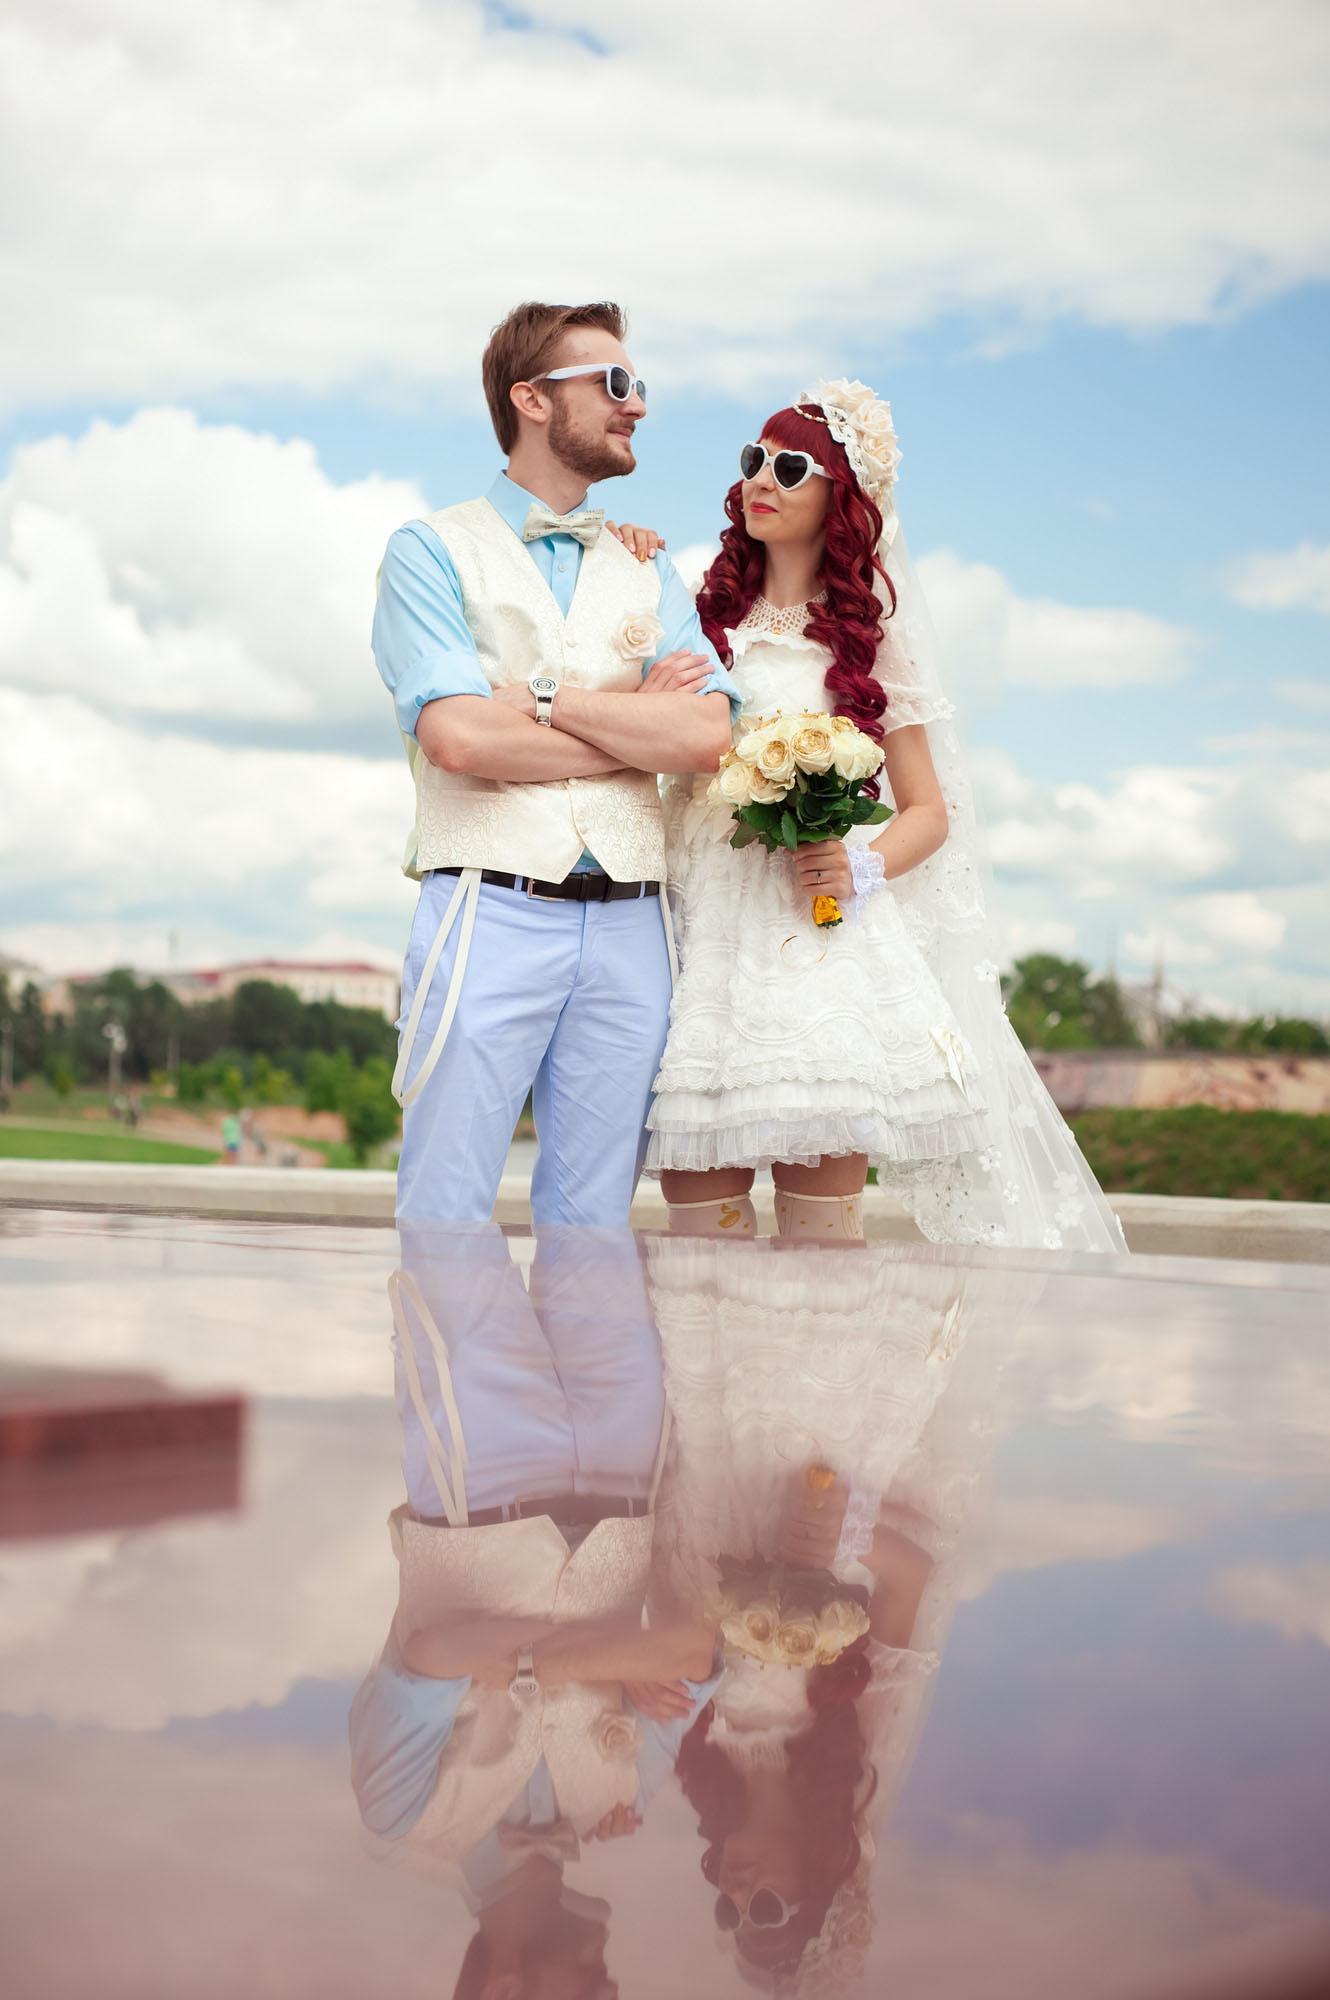 Anime Amp 1950s Inspired Wedding In Russia 183 Rock N Roll Bride